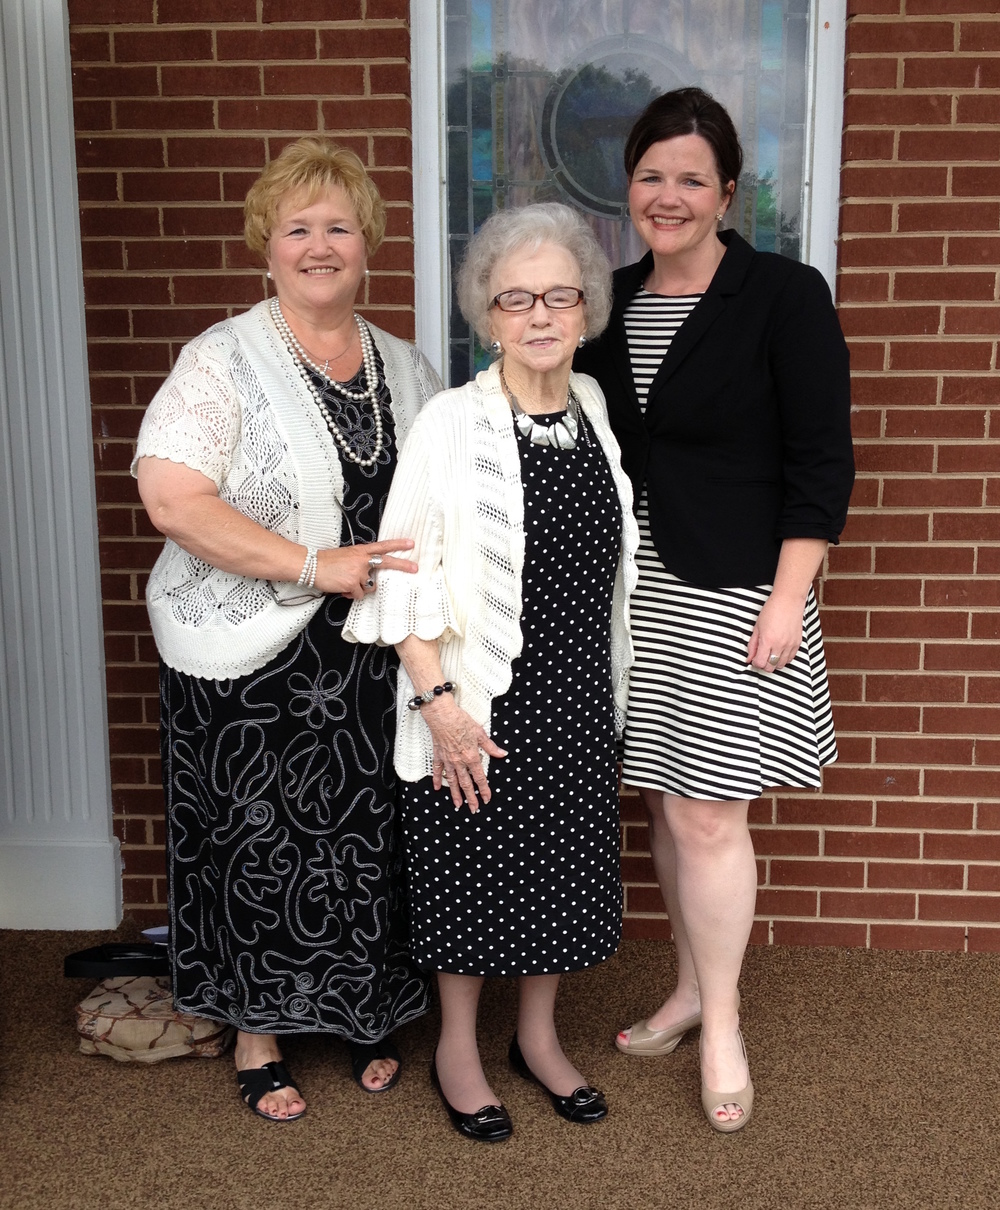 Deanna celebrating Mother's Day with her Mom and 86 year-old grandmother, Nanny Turner.  Iron Station, NC - 2015